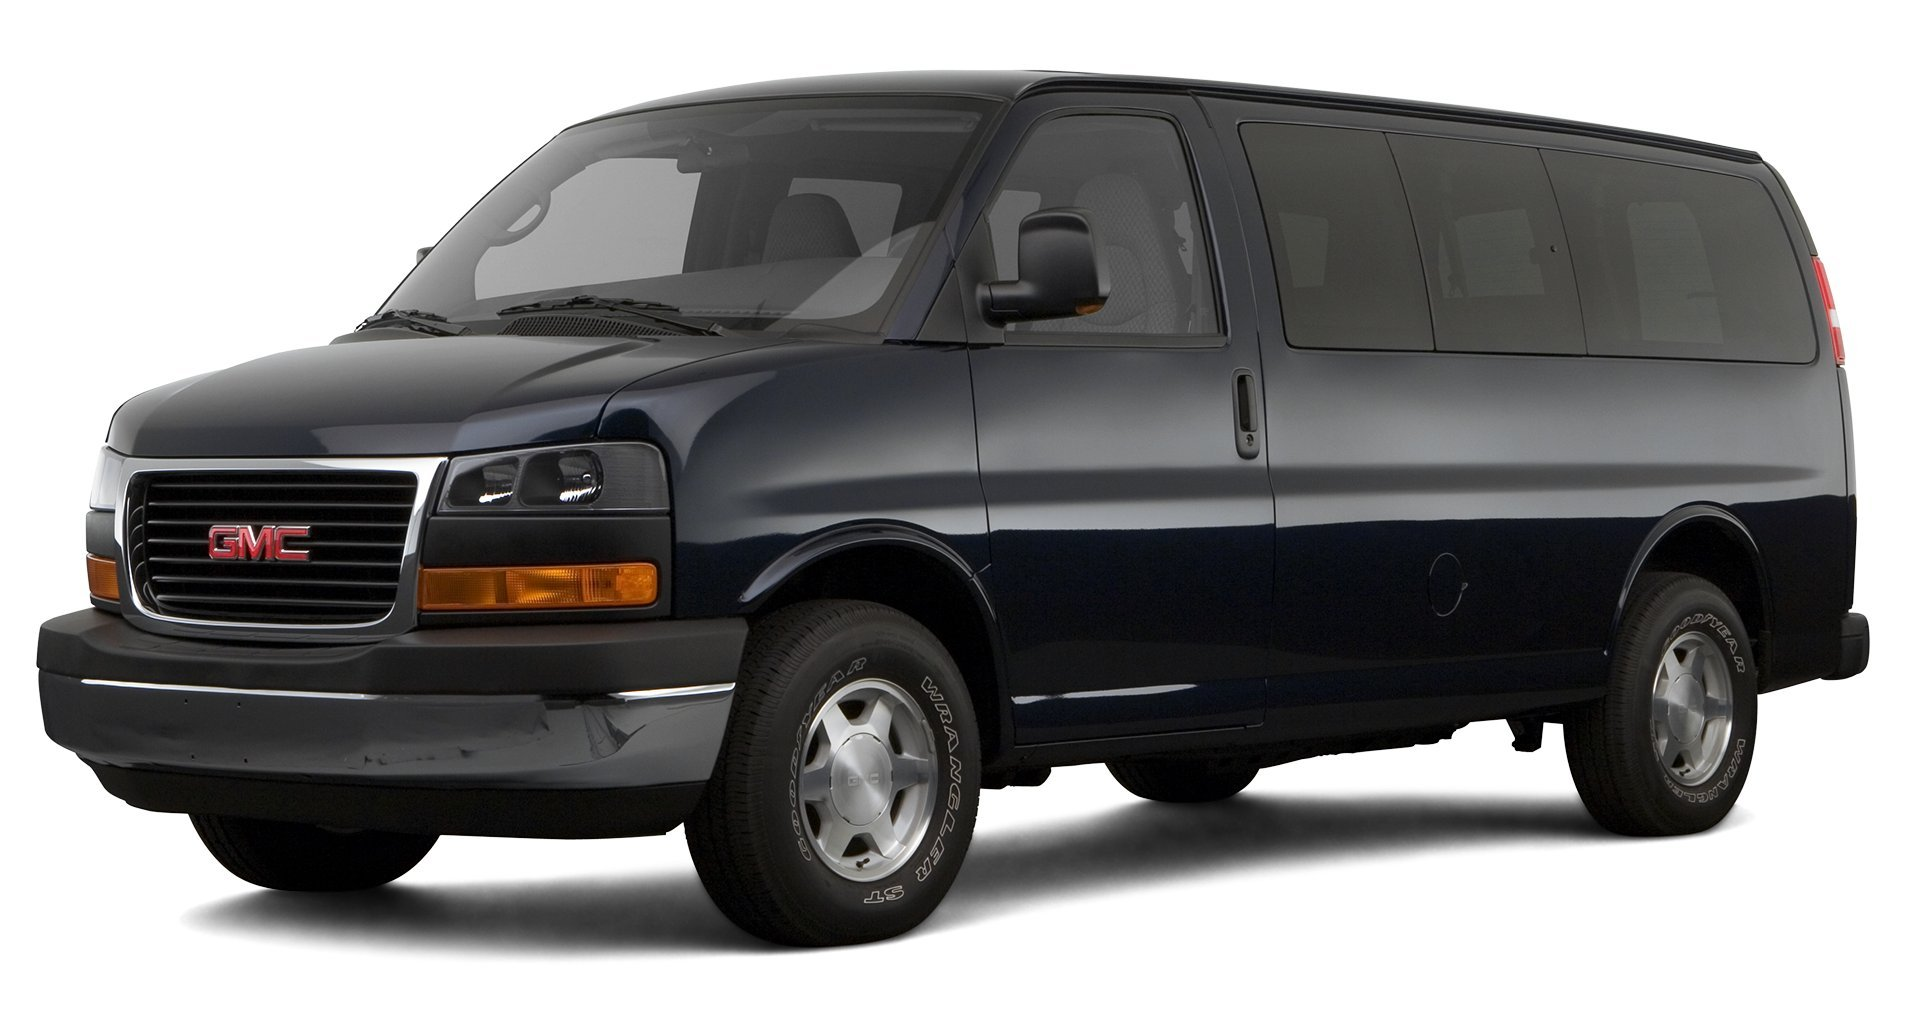 2007 chevrolet express 1500 reviews images and specs vehicles. Black Bedroom Furniture Sets. Home Design Ideas